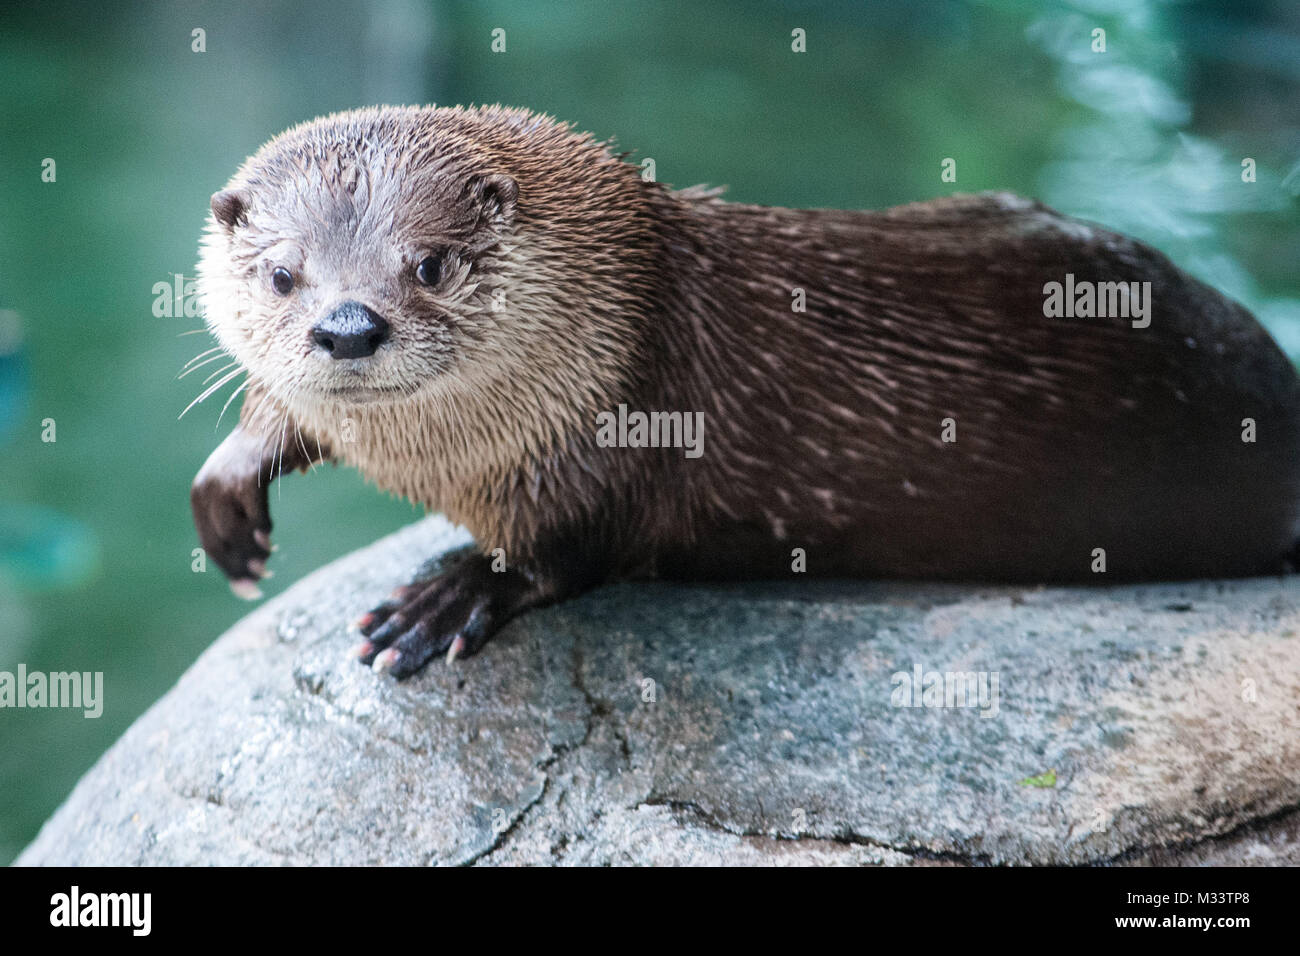 otter rock chat sites Search the world's information, including webpages, images, videos and more google has many special features to help you find exactly what you're looking for.